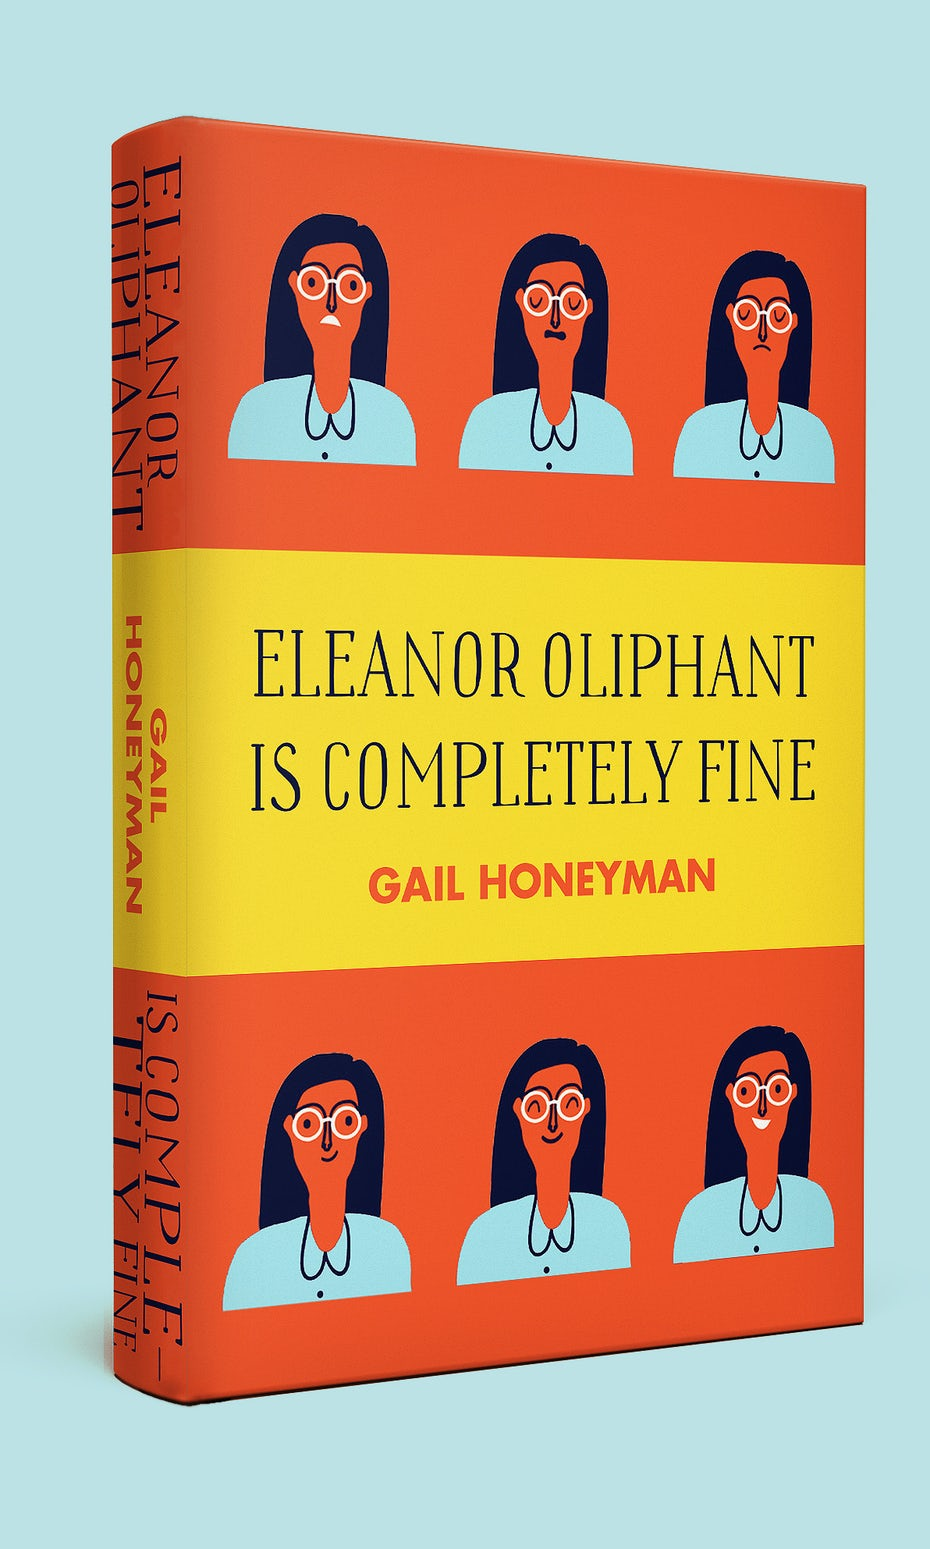 Eleanor Oliphant is Completely Fine Cover Redesigned